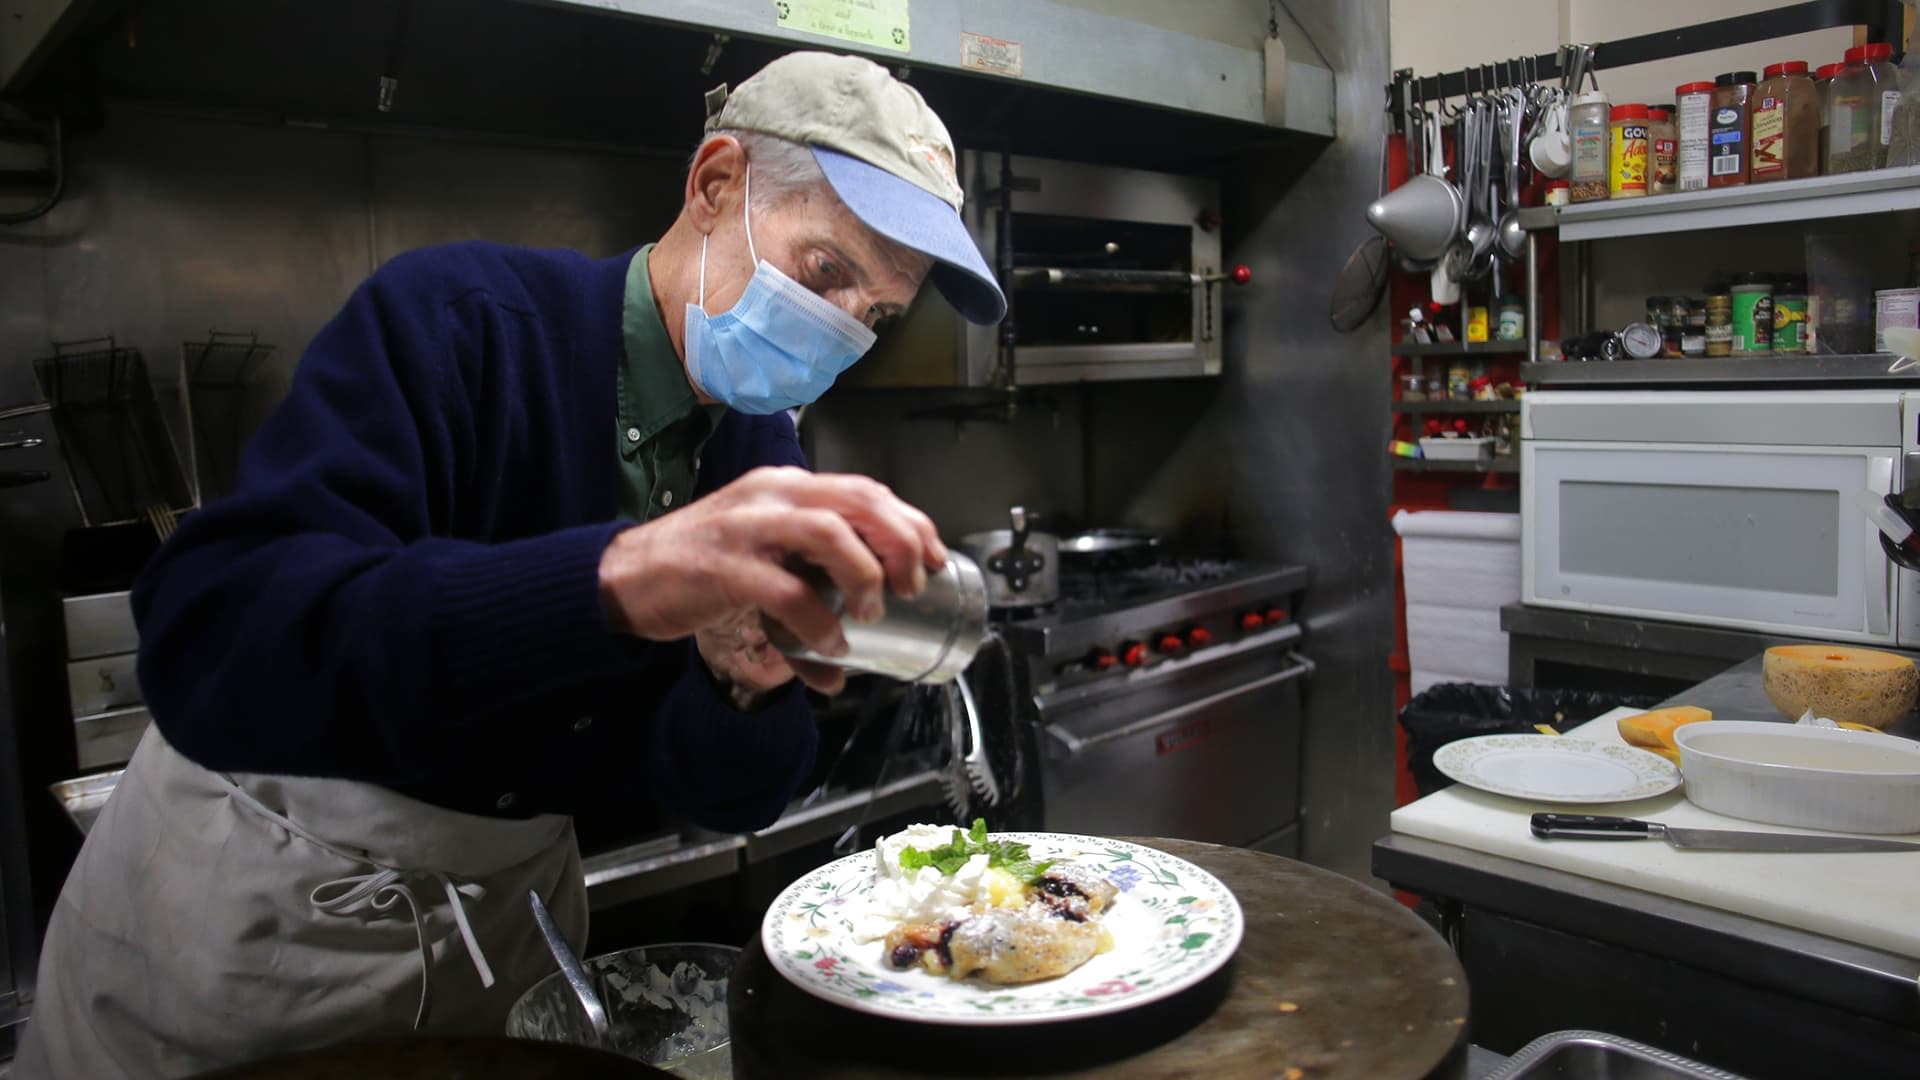 Craig Bero prepares a crepe in the kitchen of Pleasant and Main in Housatonic, MA on Sept. 15, 2020.